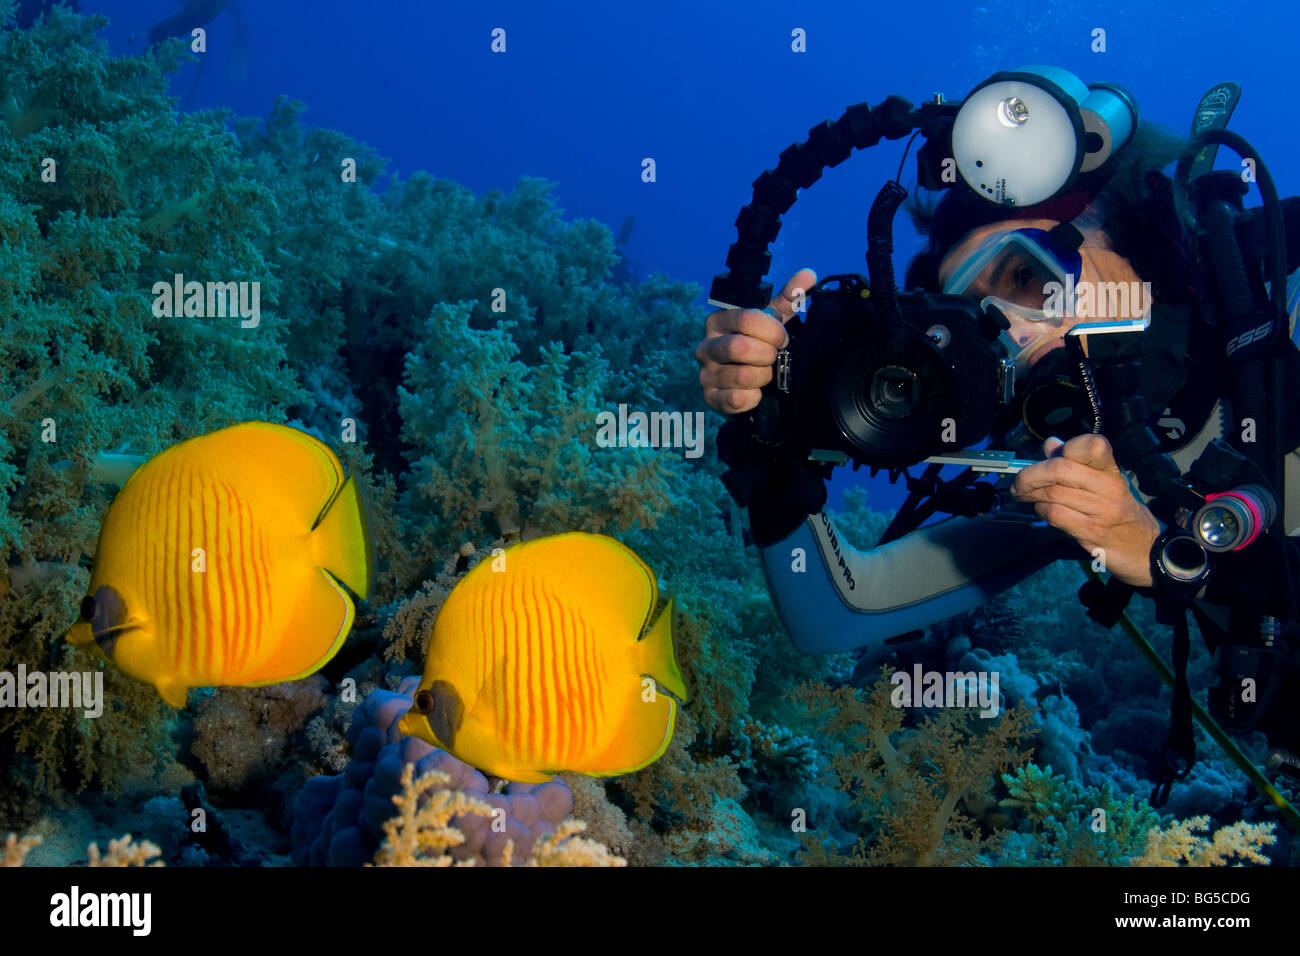 Underwater photographer scuba diving, Ras Mohammed, national park, Egypt, diver, tropical reef, fish, colorful, - Stock Image